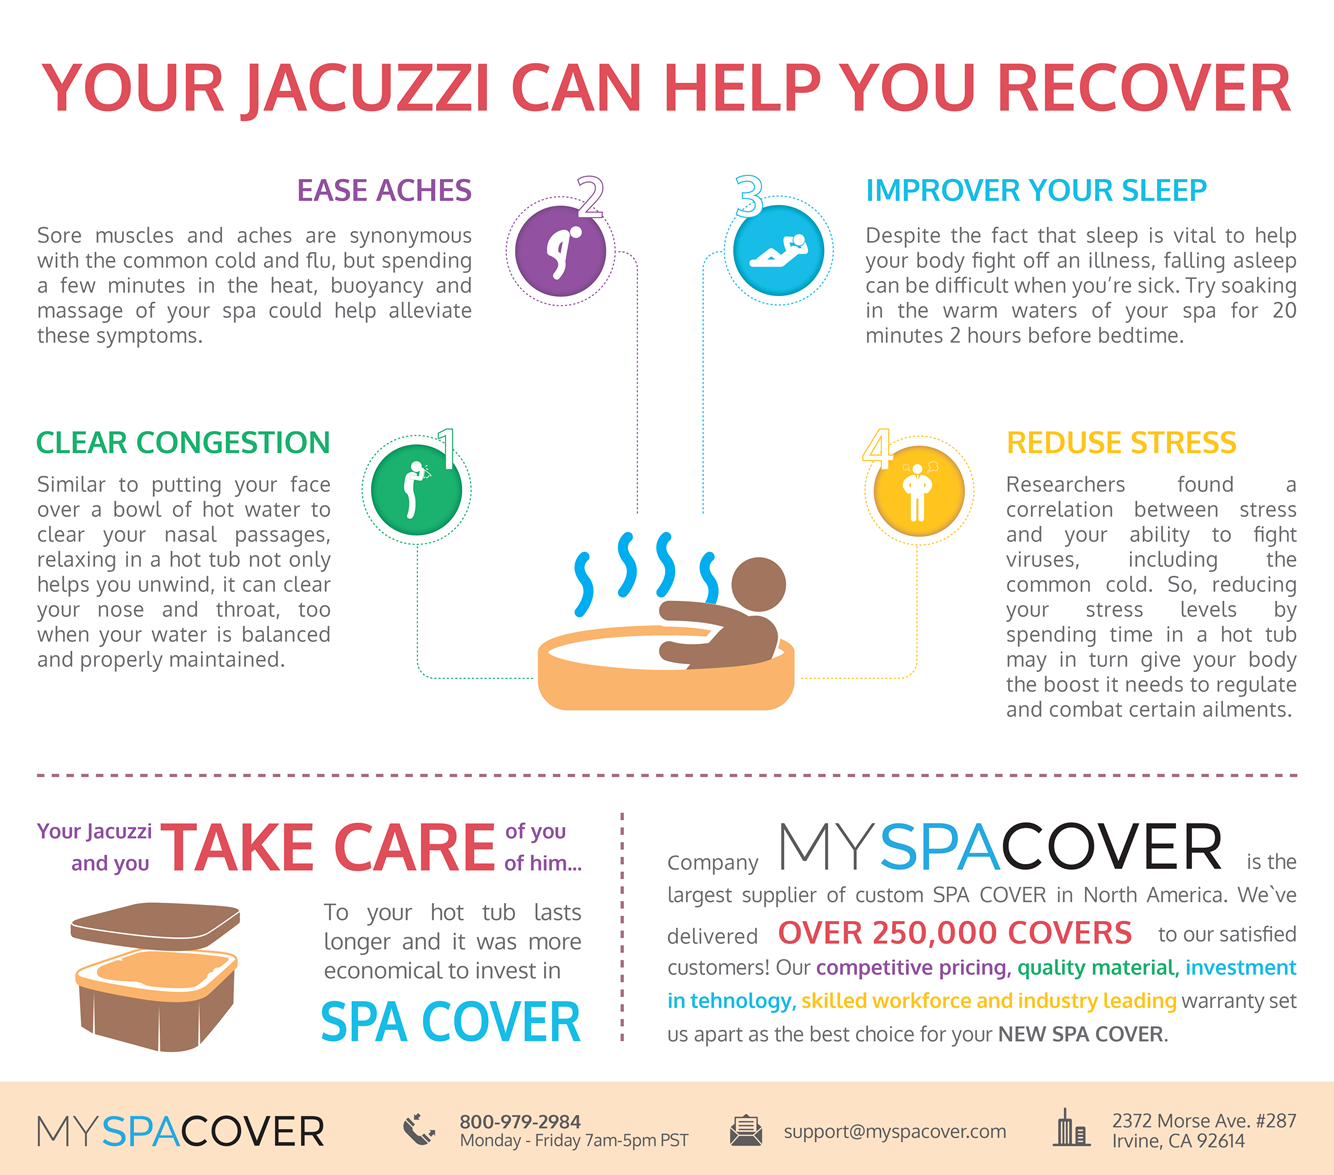 Health Benefits from a Hot Tub [INFOGRAPHIC]